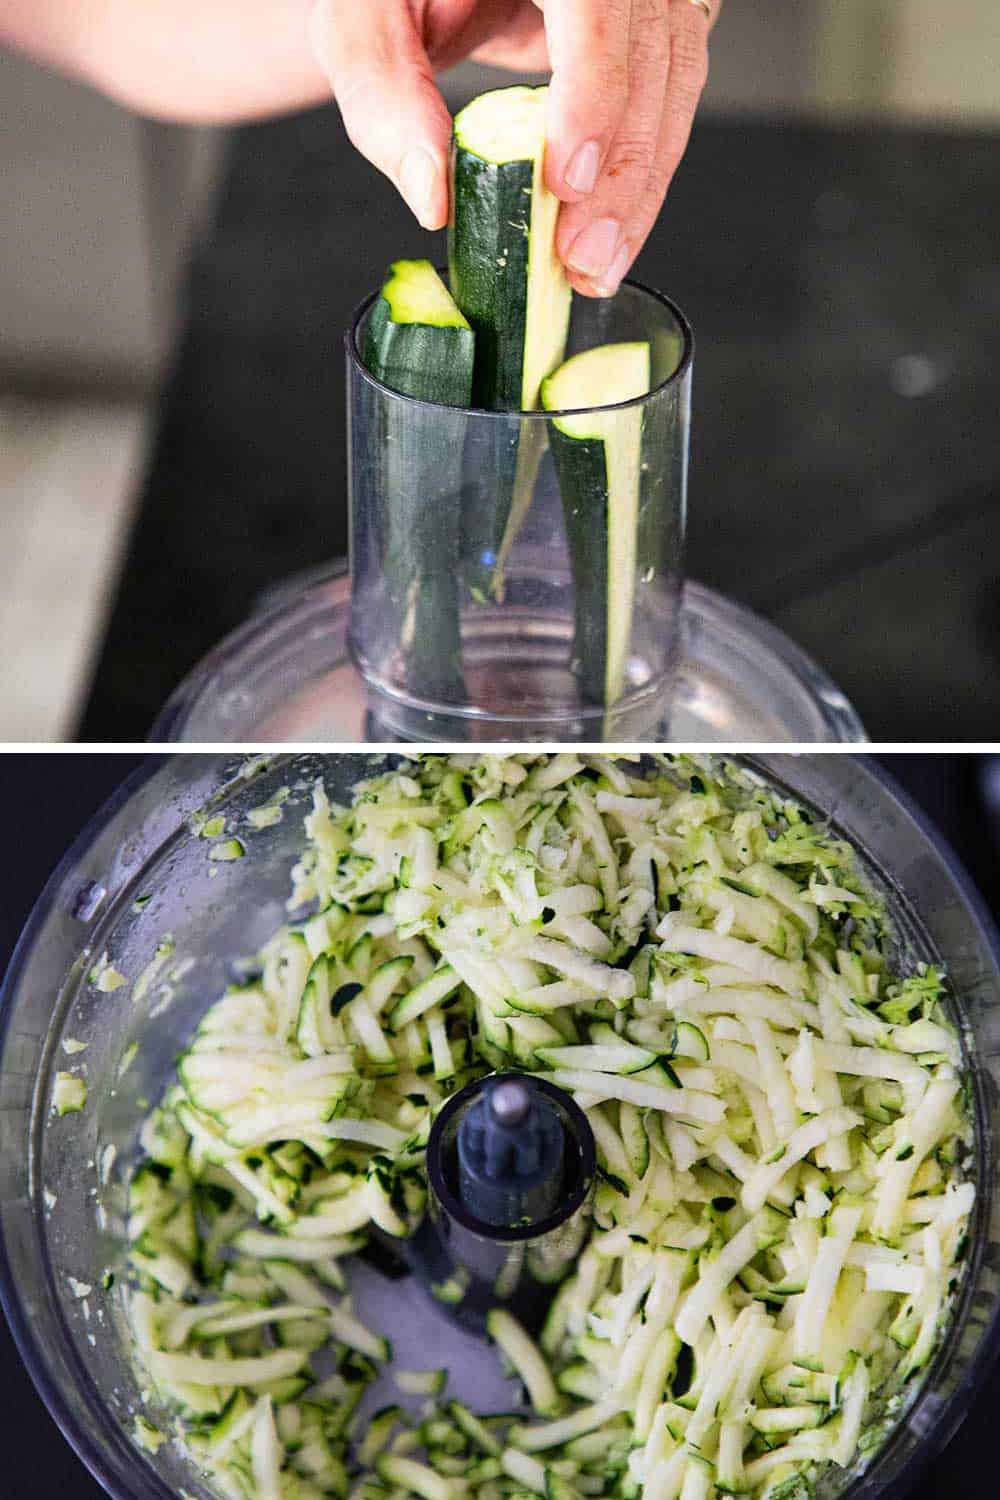 Quartered pieces of zucchini being place into the tube on the lid of a food processor, and then the zucchini after it's been shredded.